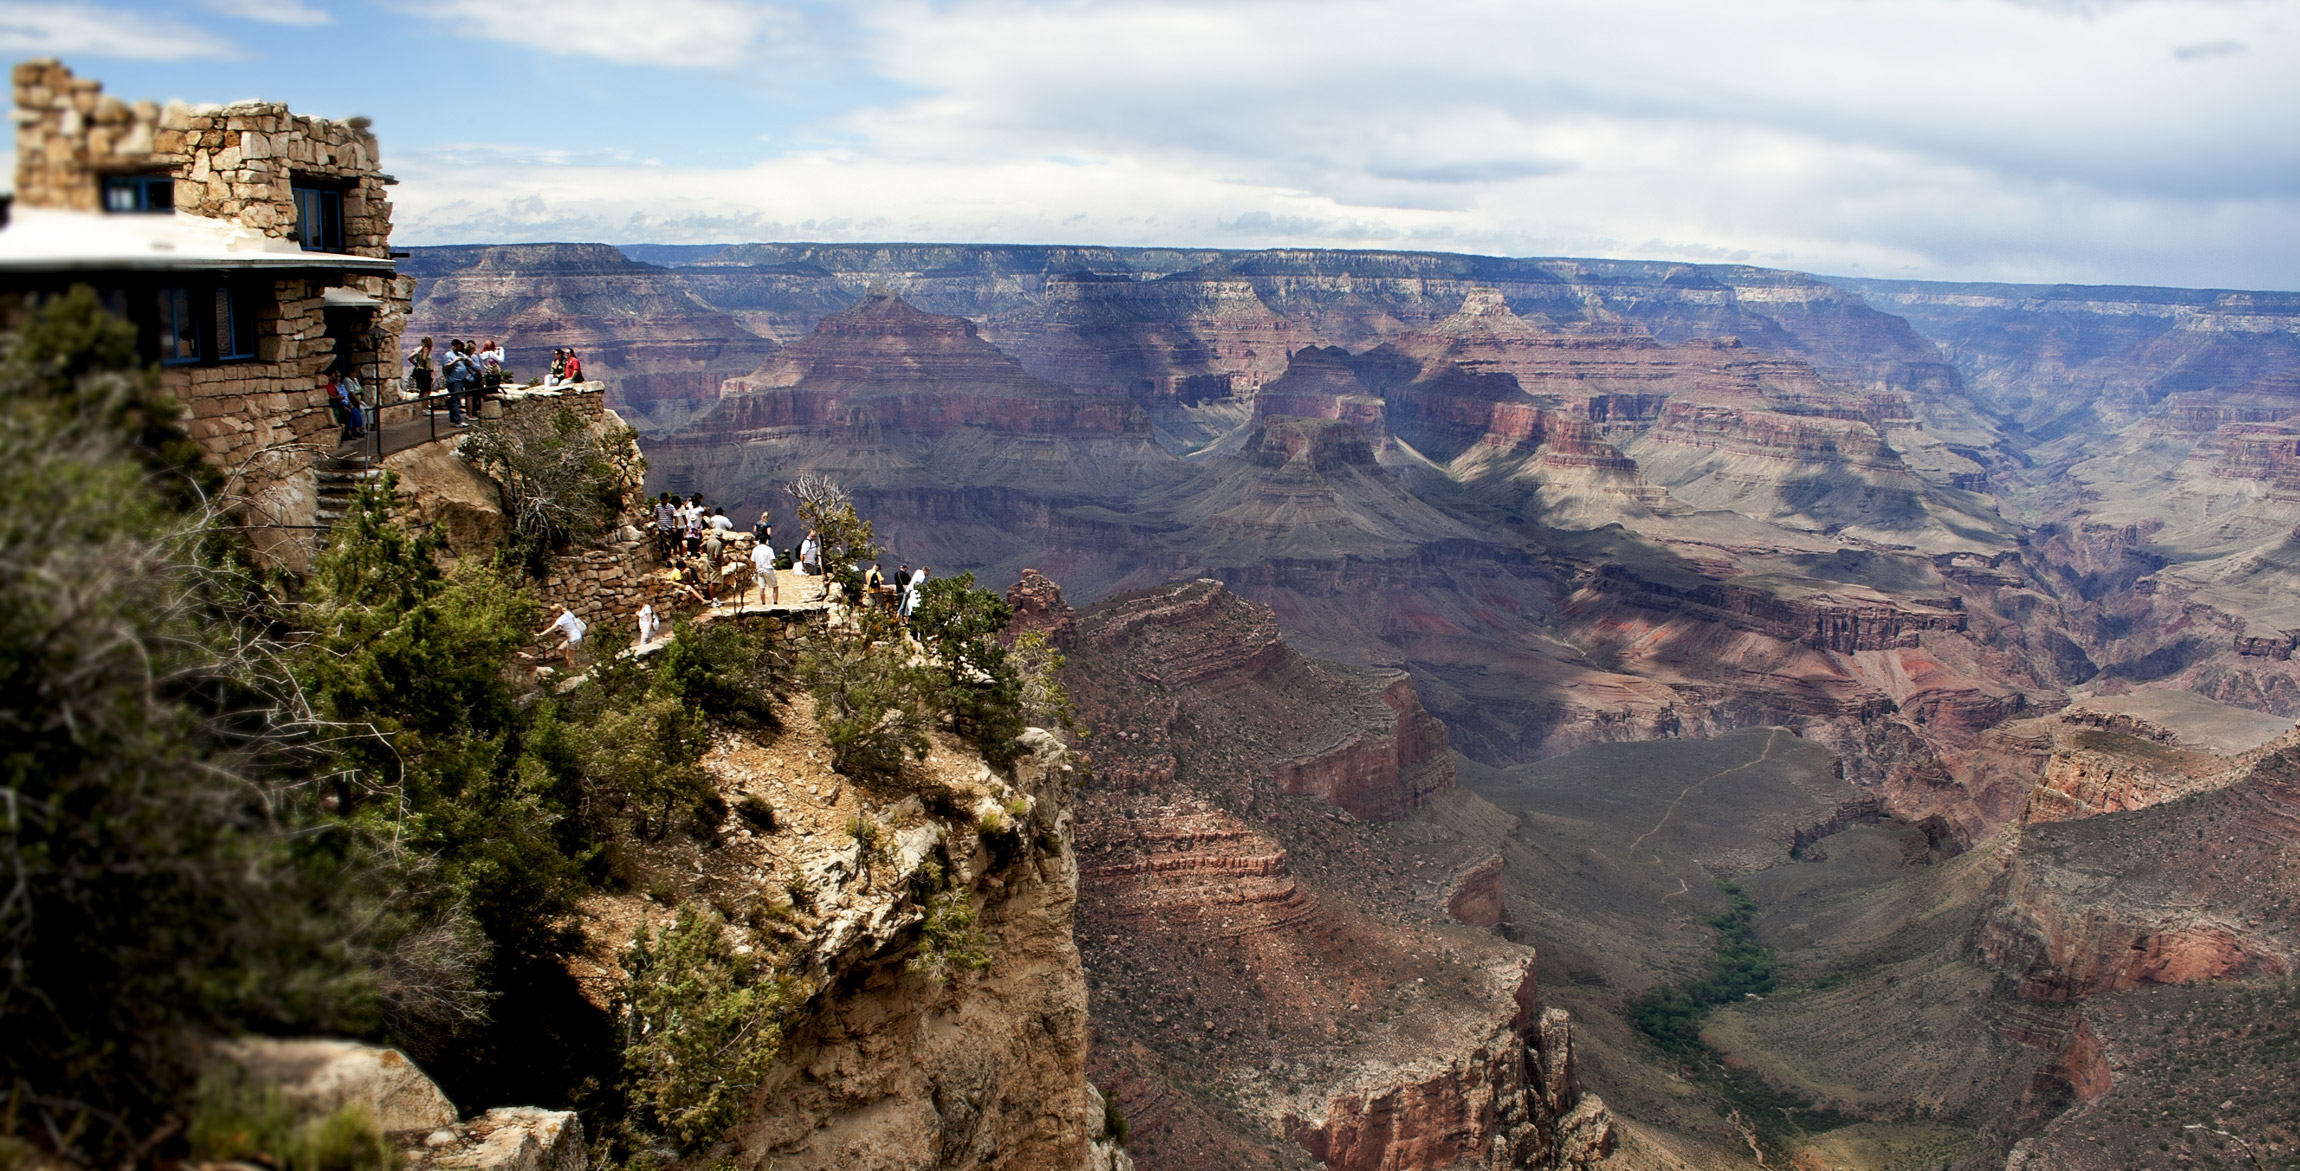 north angel bright grand park for cabins lodge stock is rent photo at arizona point in canyon located national rim